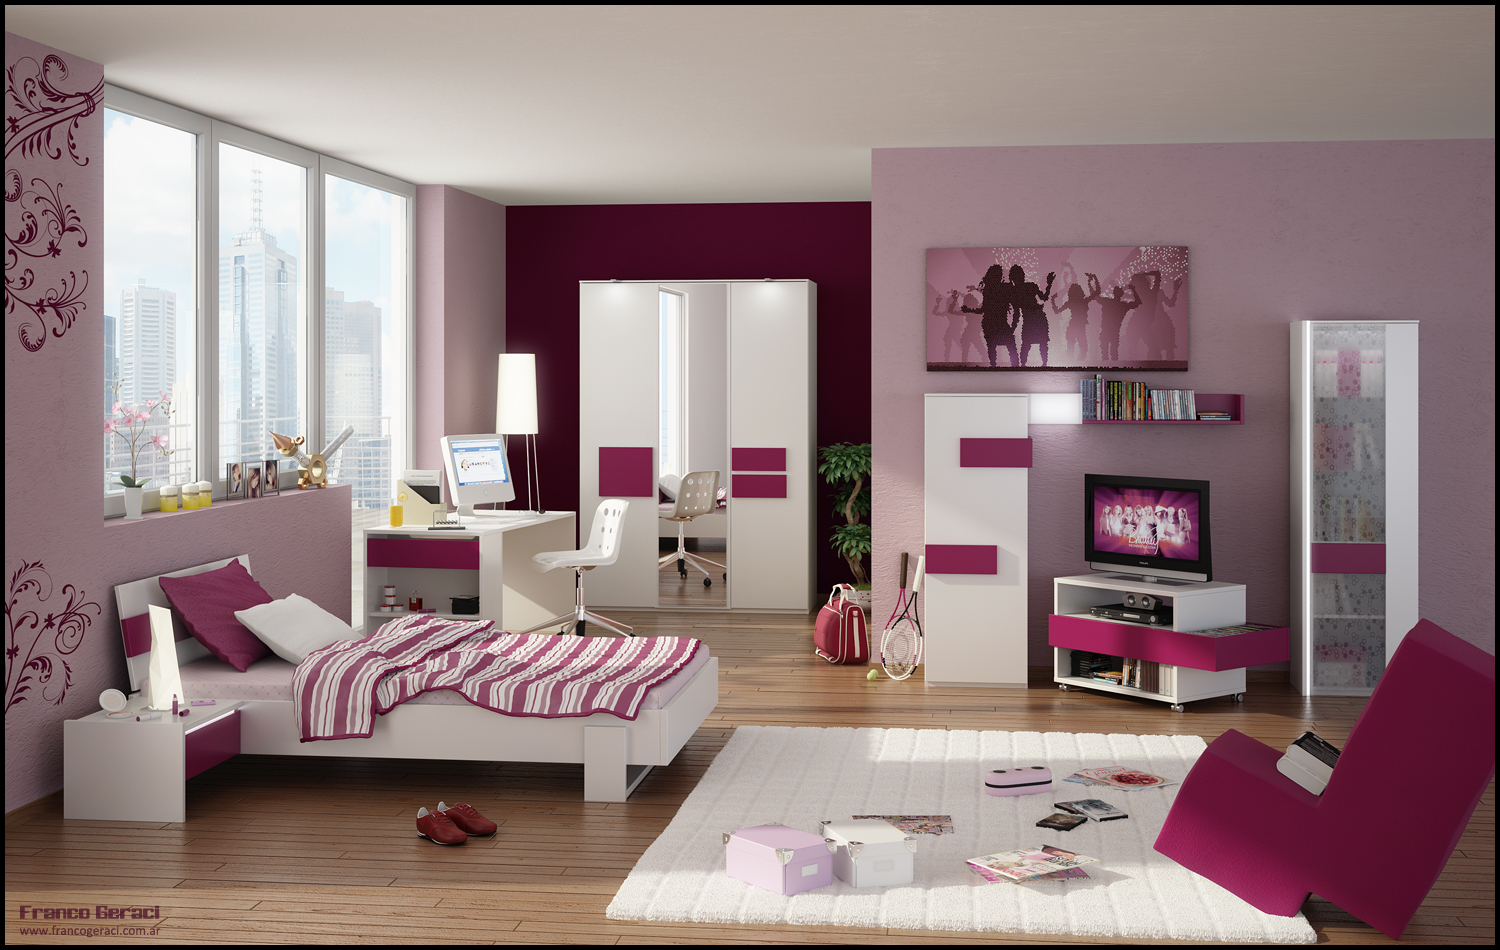 Teenage room designs - Teen bedroom ideas ...